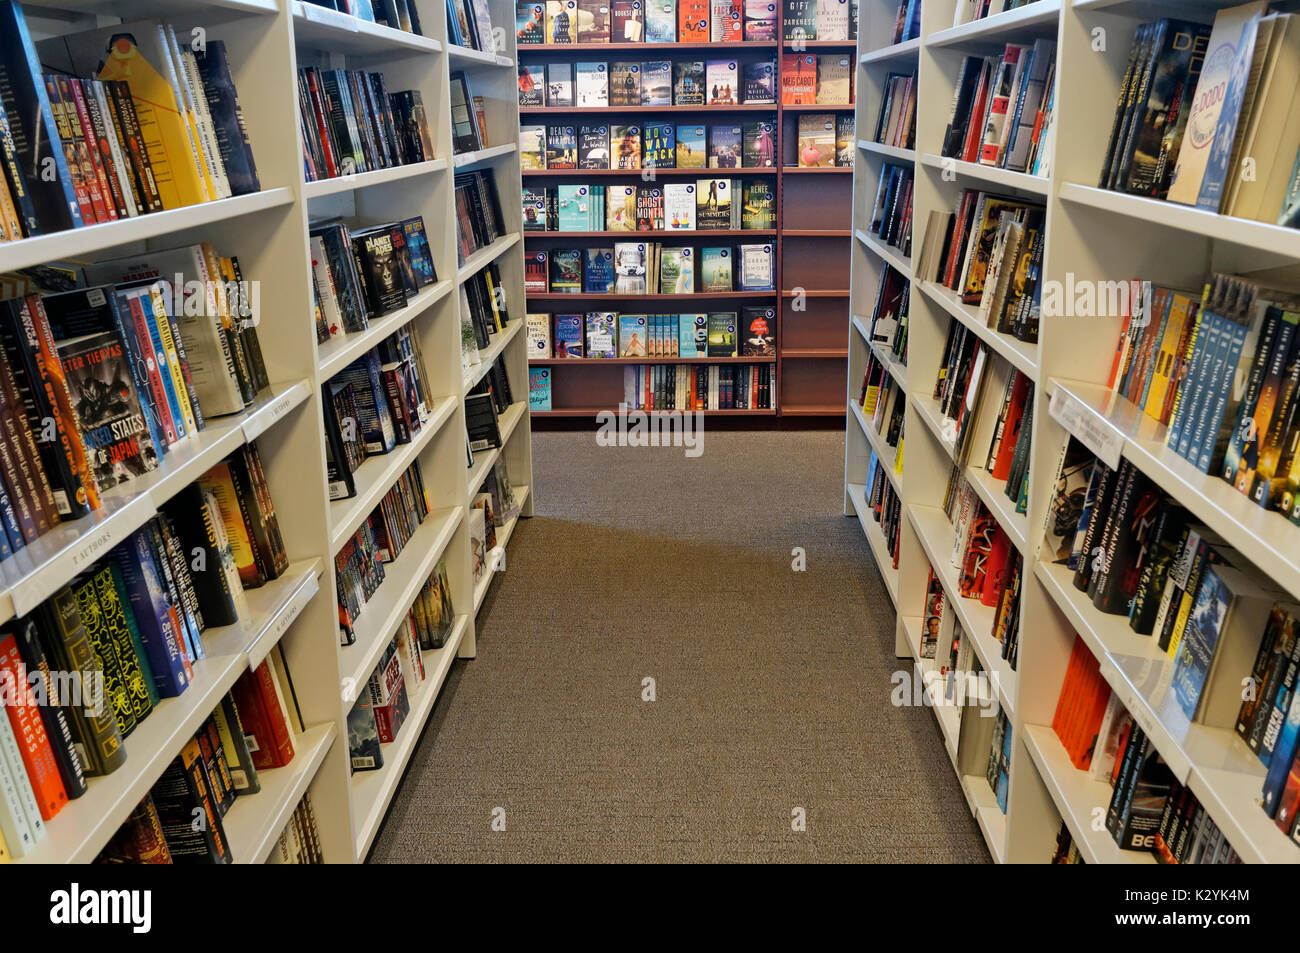 Fiction books aisle with no people in a bookstore, Vancouver, BC, Canada - Stock Image